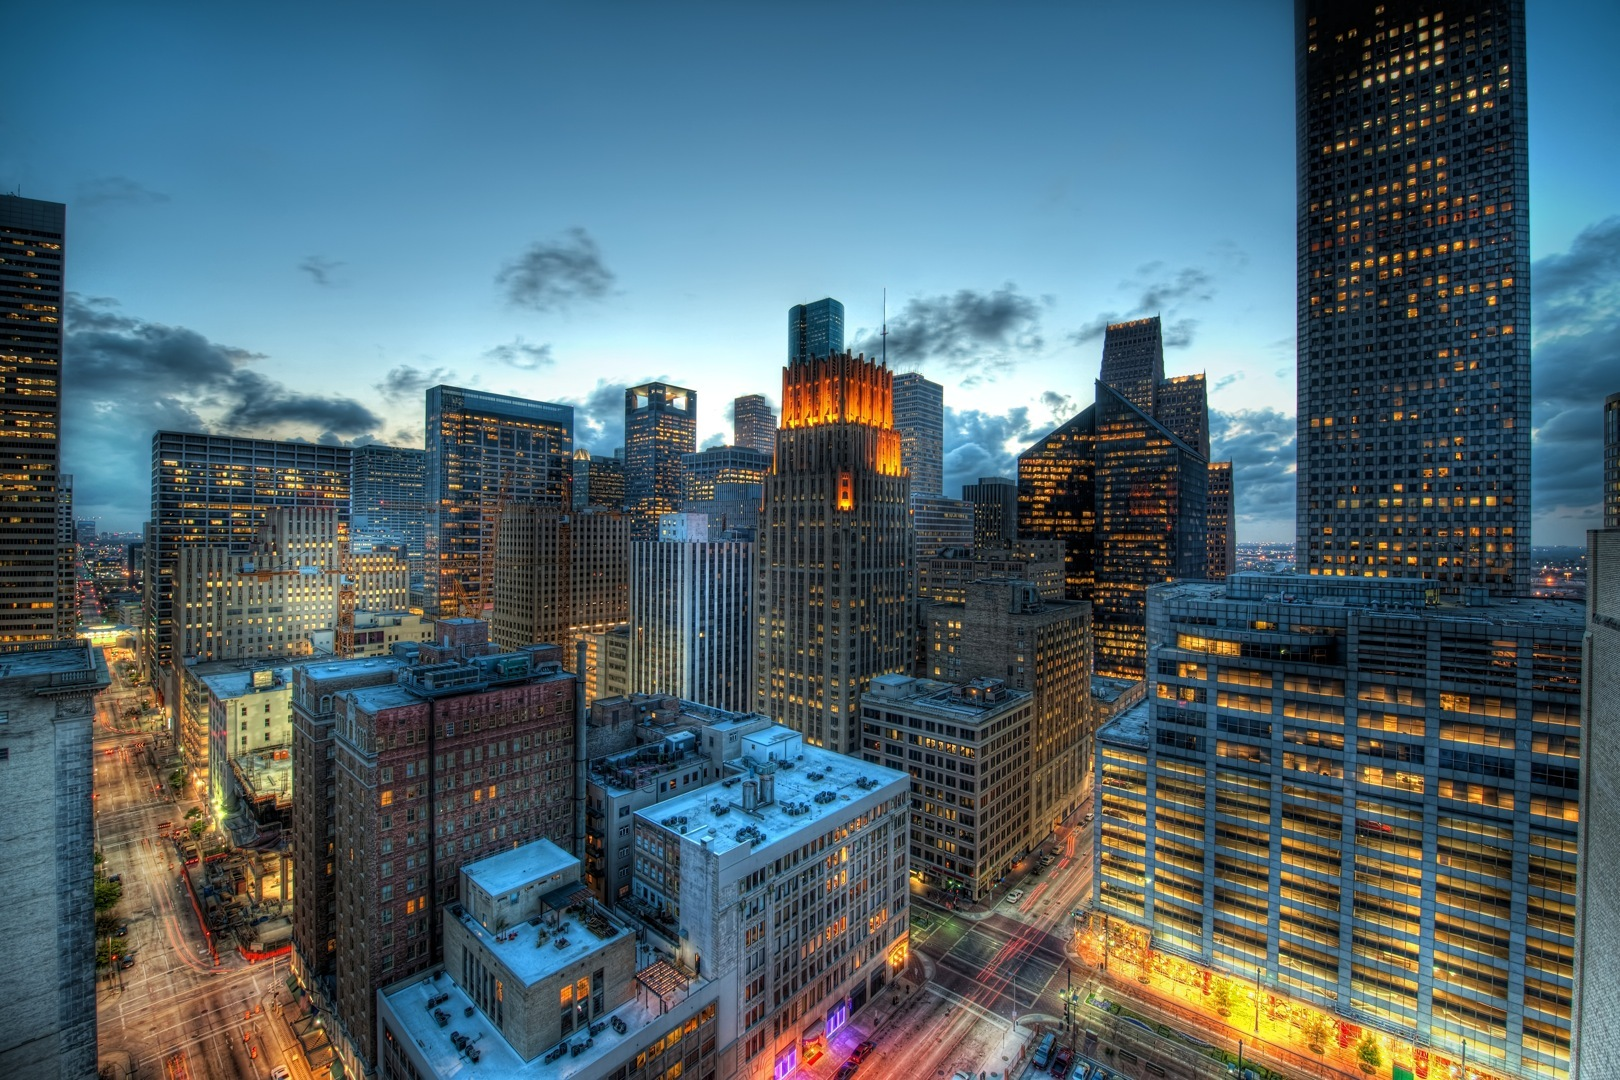 Houston at Dusk, Trey Ratcliff, 2009